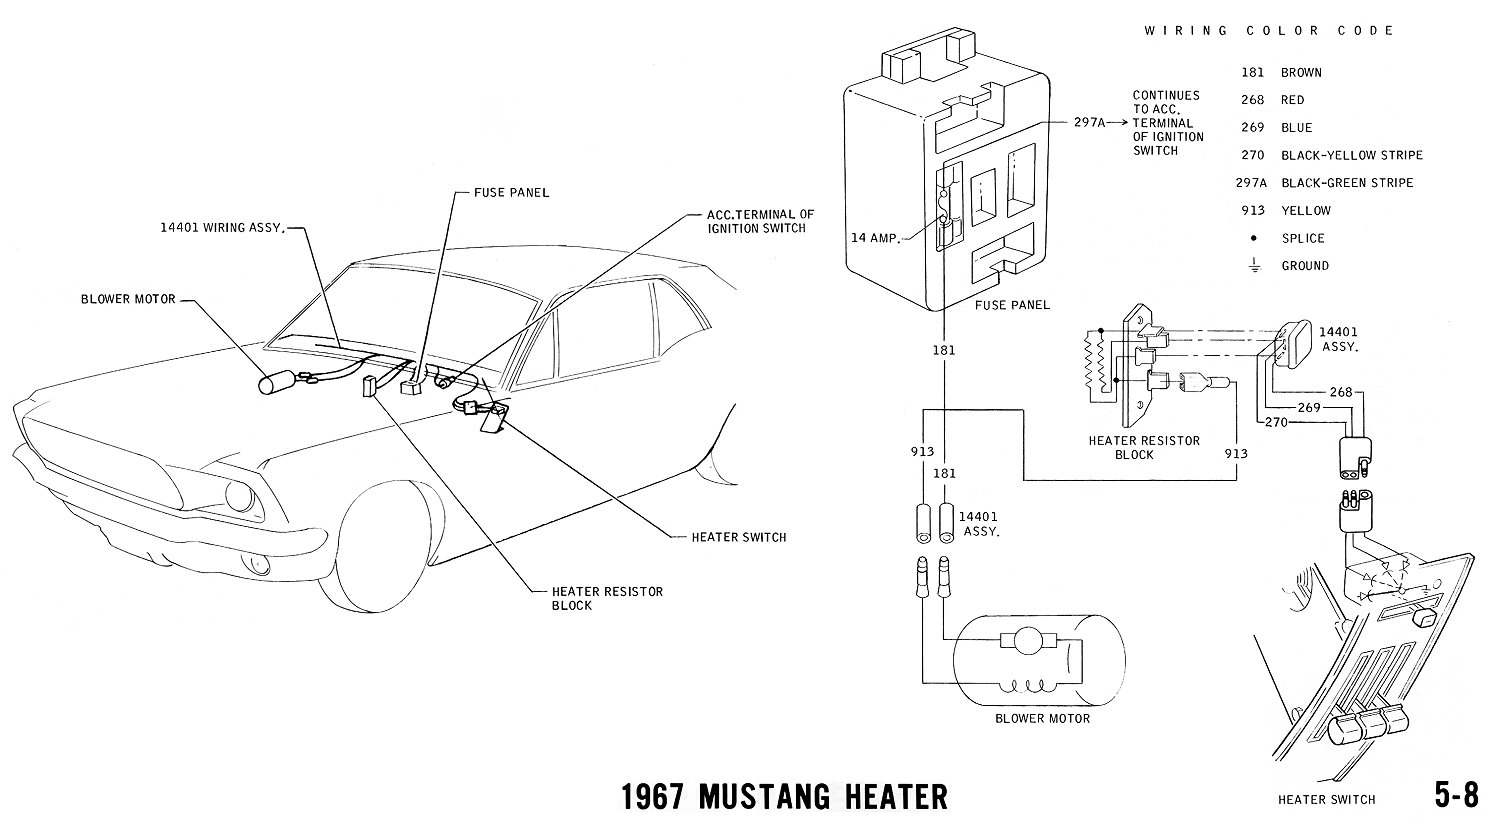 1967 Mustang Wiring And Vacuum Diagrams Average Joe Restoration 65 Wire Diagram Starting Pictorial Schematic